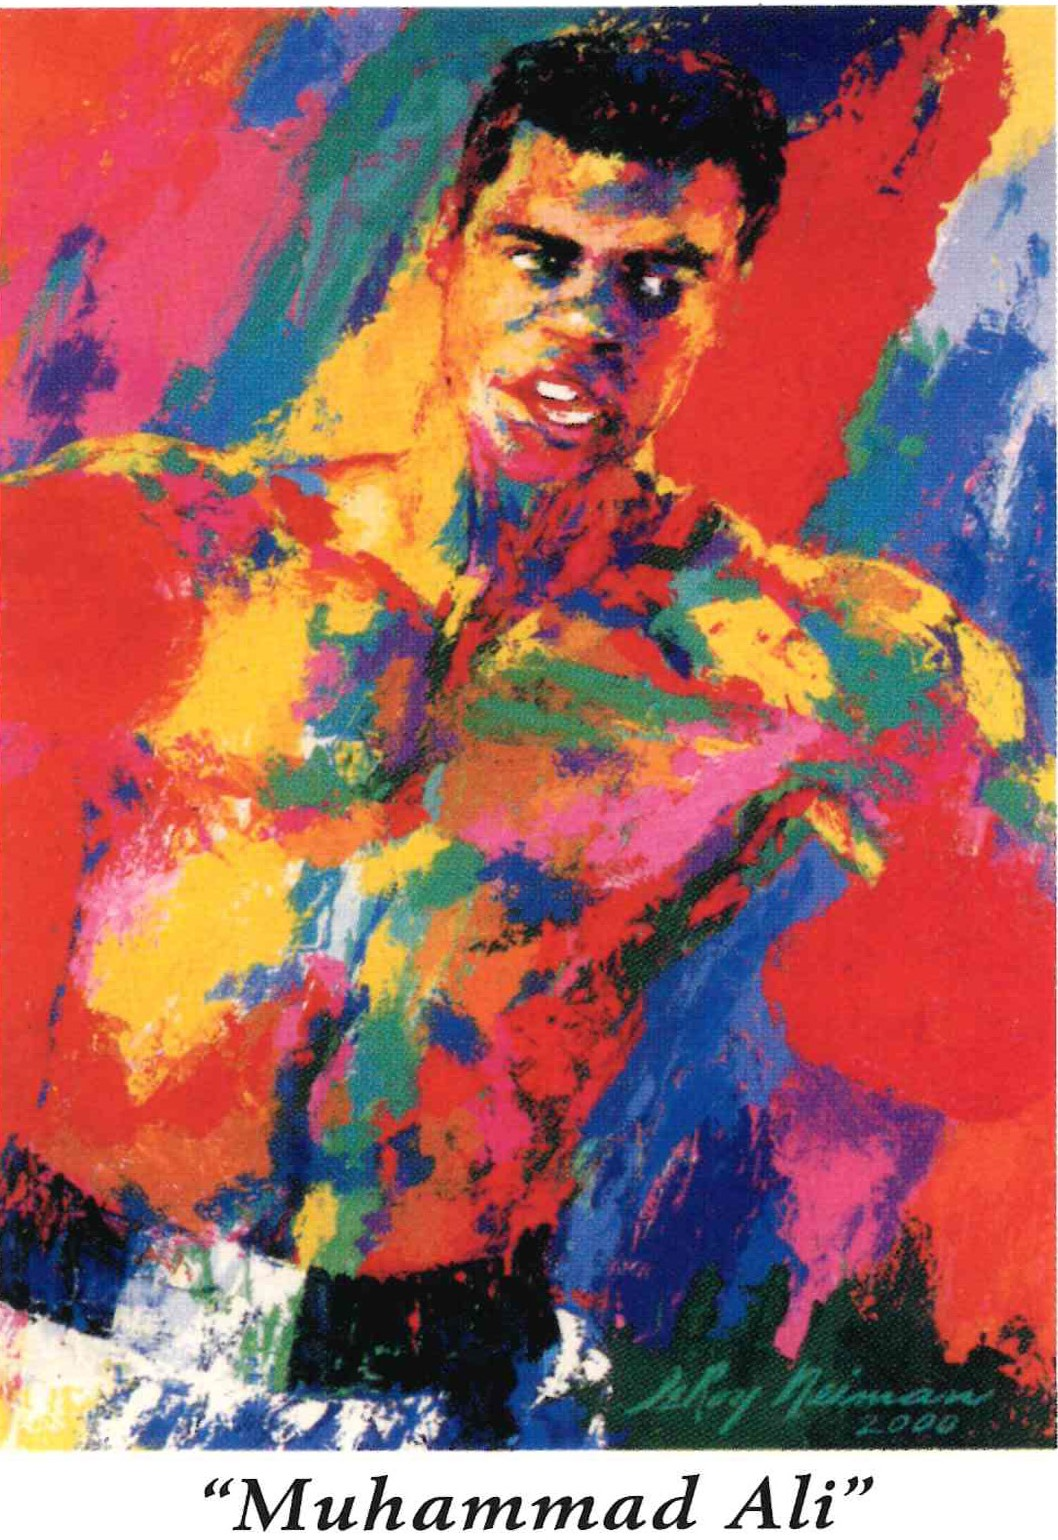 DBG1005 – Mohammad Ali By Leroy Neiman 24×28 Serigraph numbered 645 – year 2001